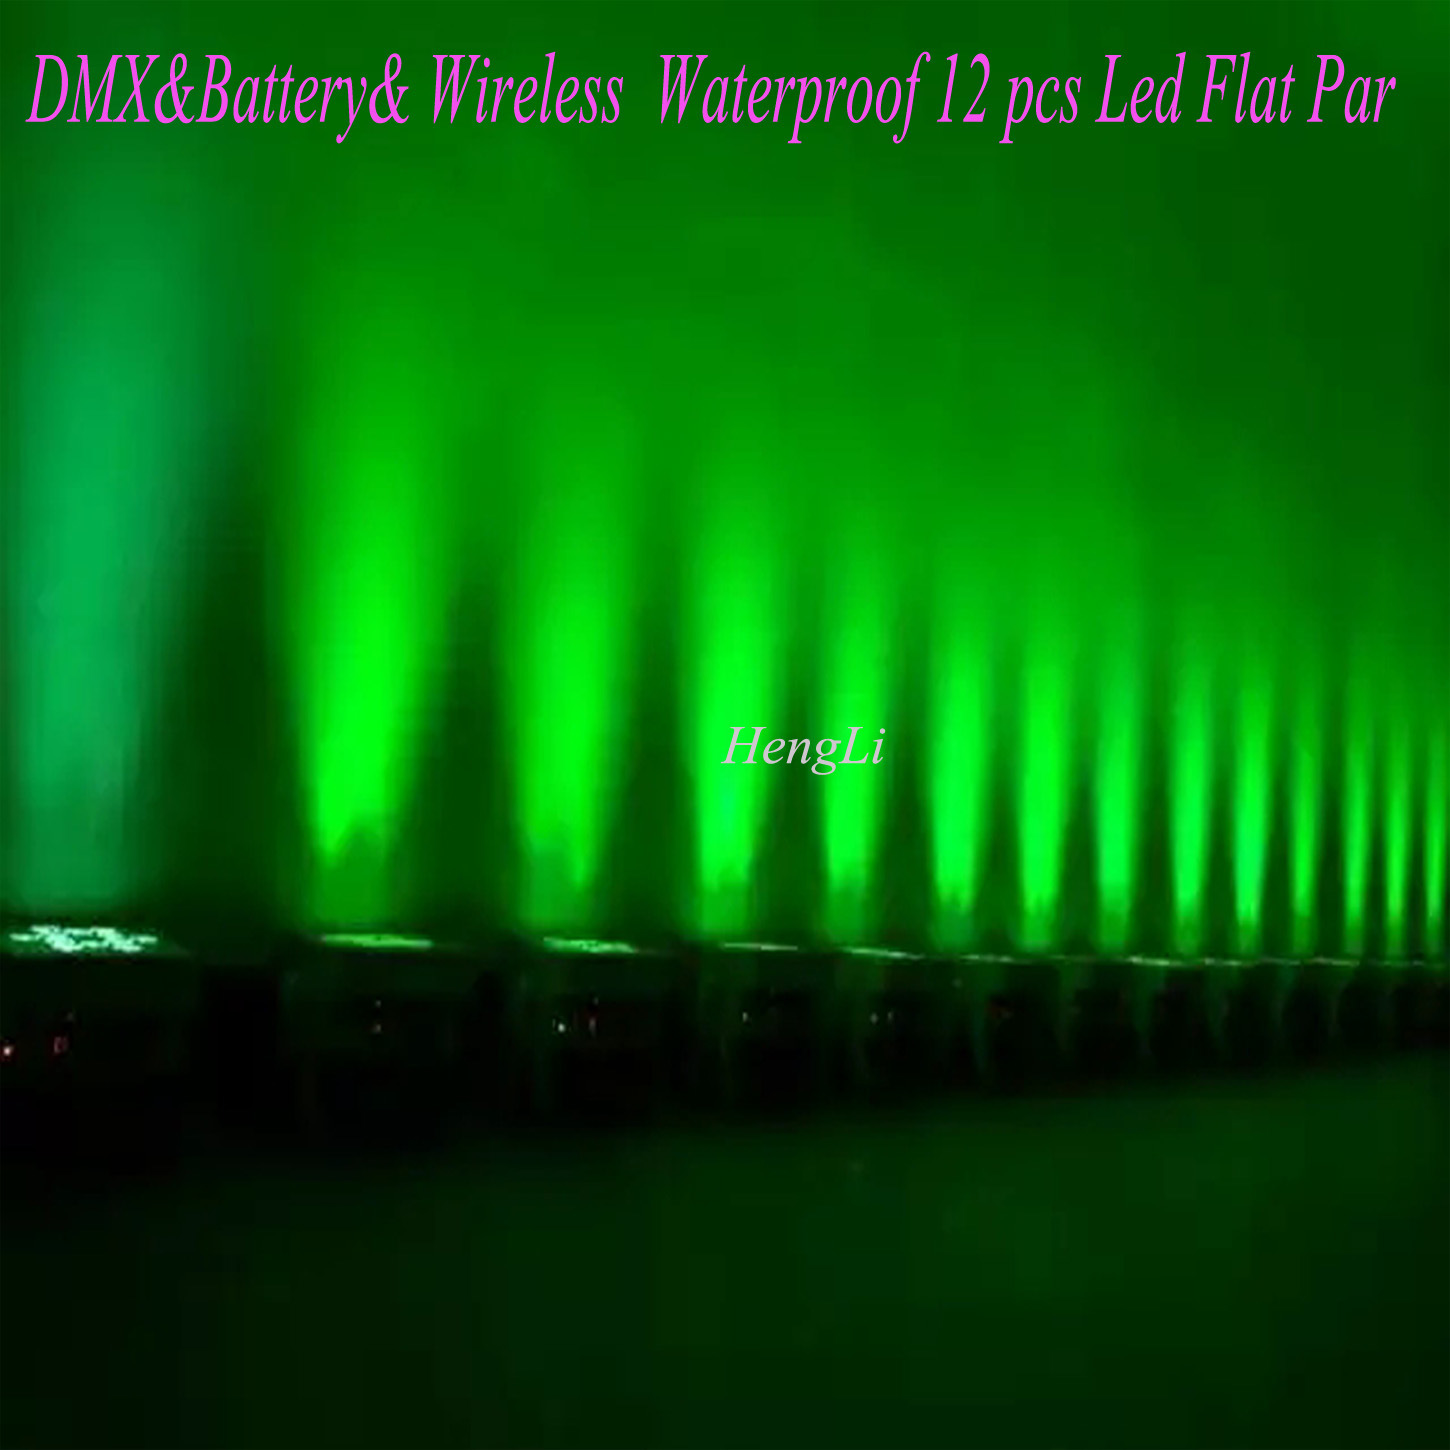 DMX&Battery& Wireless Waterproof Kibetic Lighting 12 *10W RGBW 4in1 LED Flat PAR